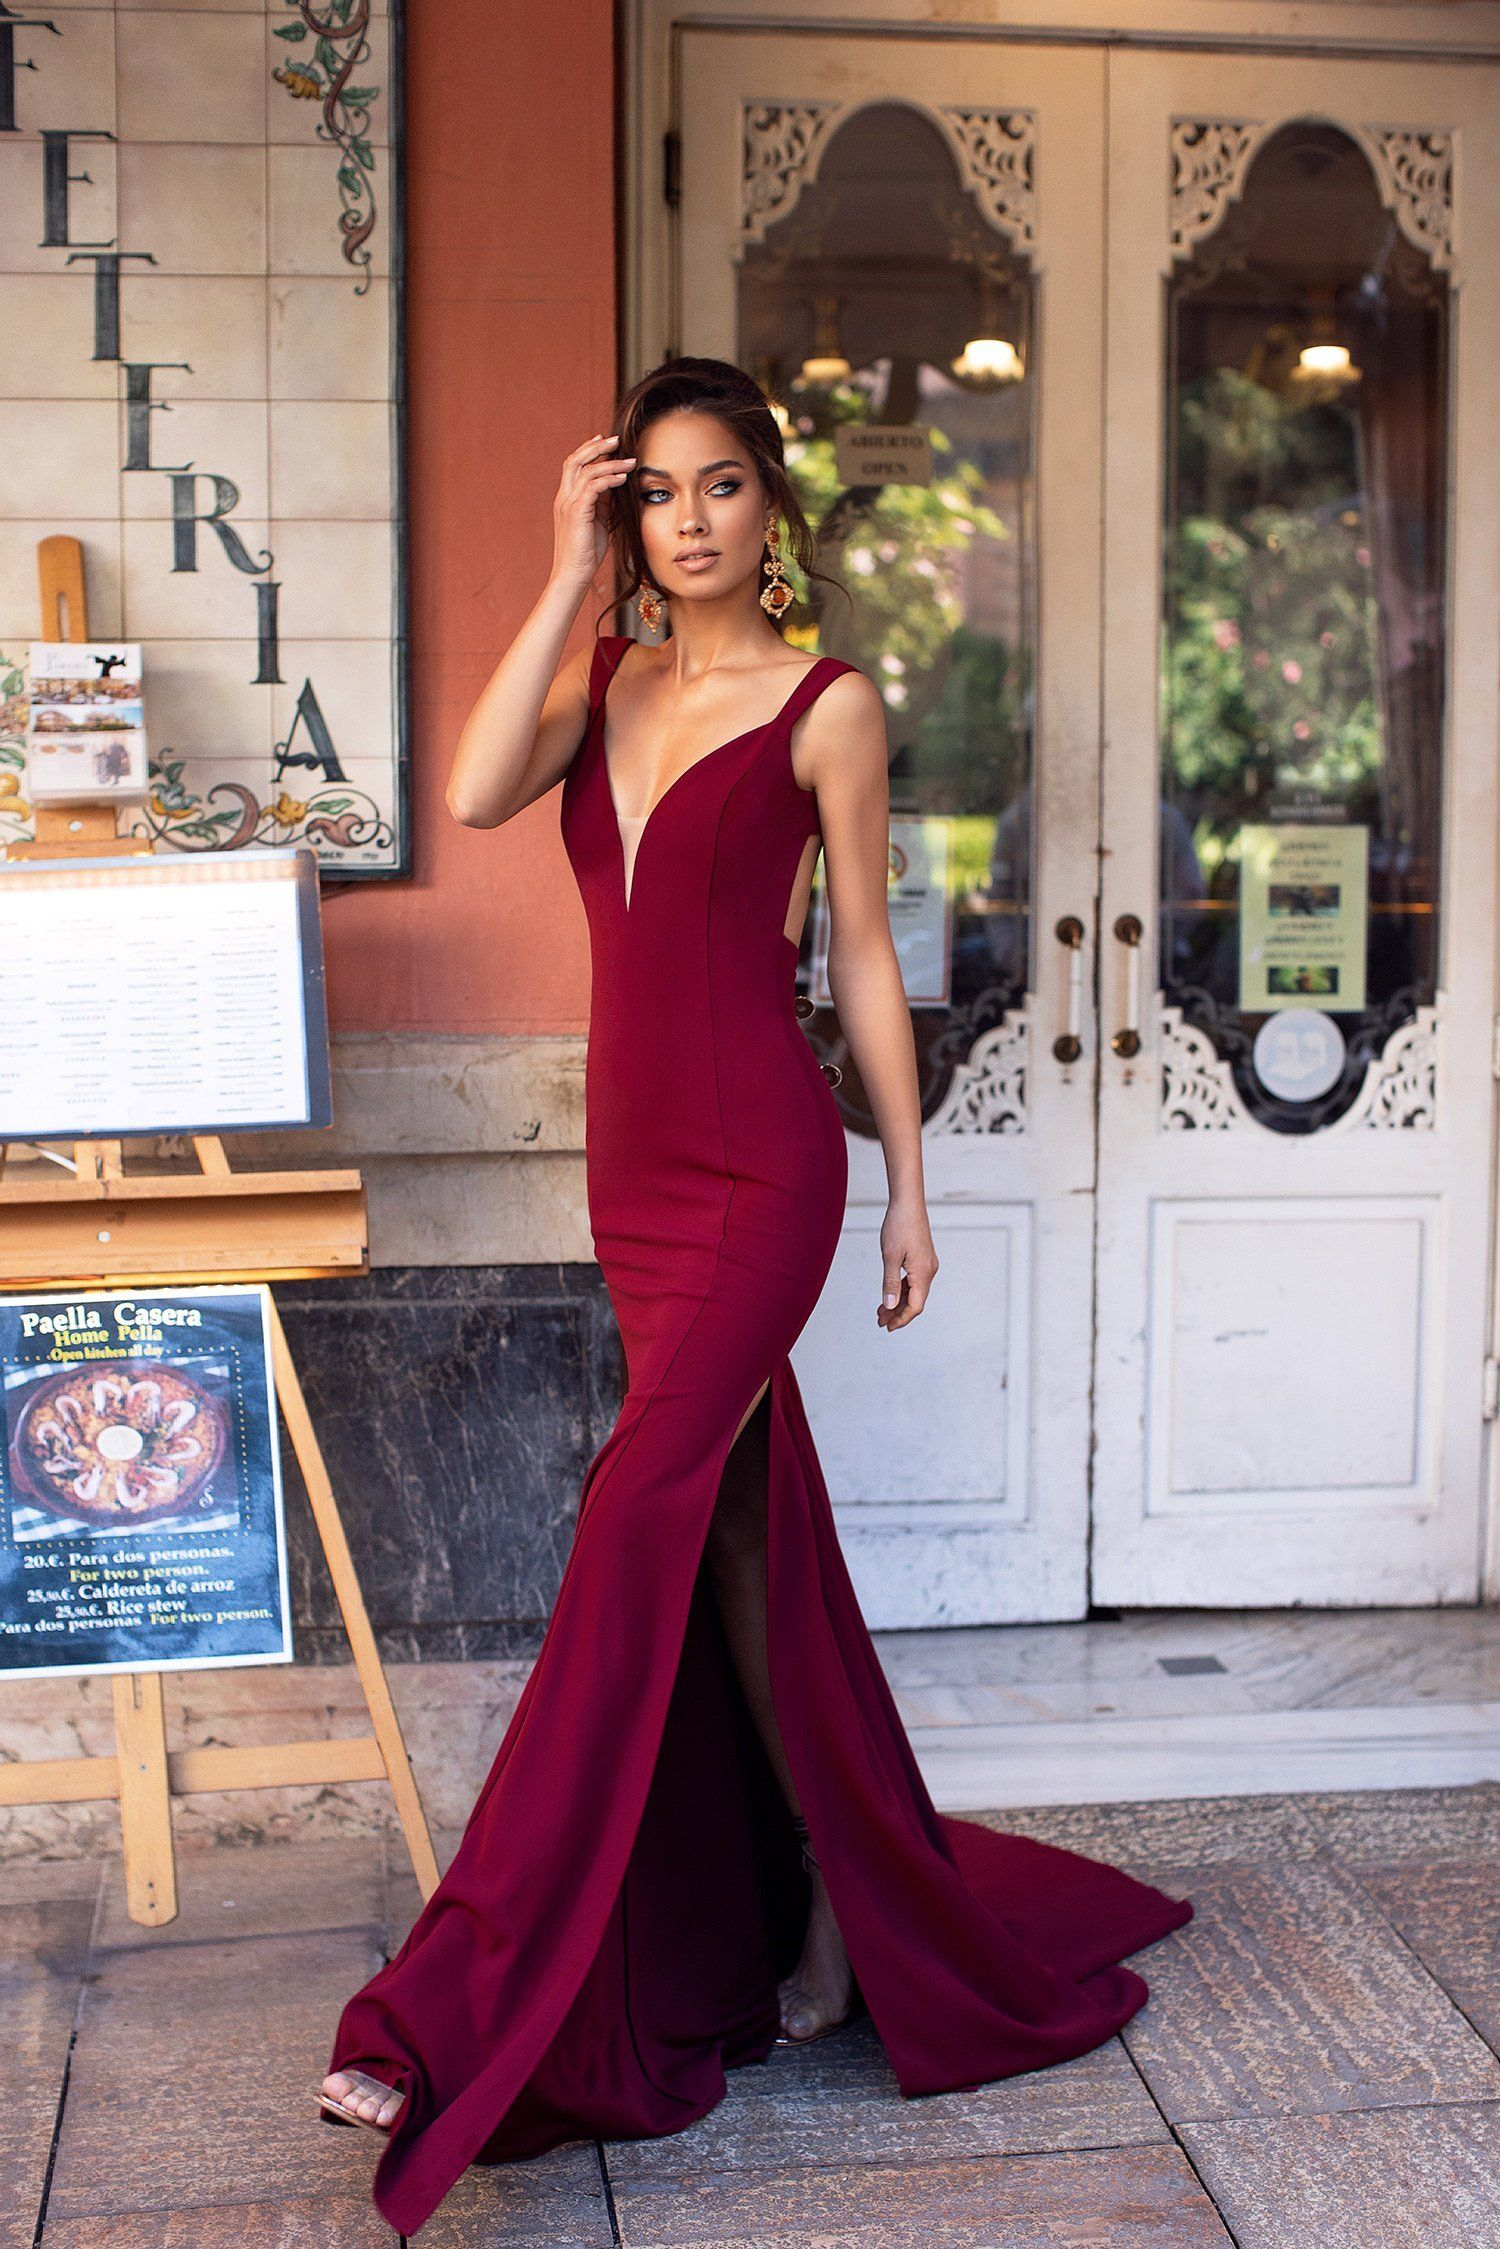 Reina Burgundy Simple Gowns Burgundy Gown Black Long Sleeve Cocktail Dress [ 2249 x 1500 Pixel ]